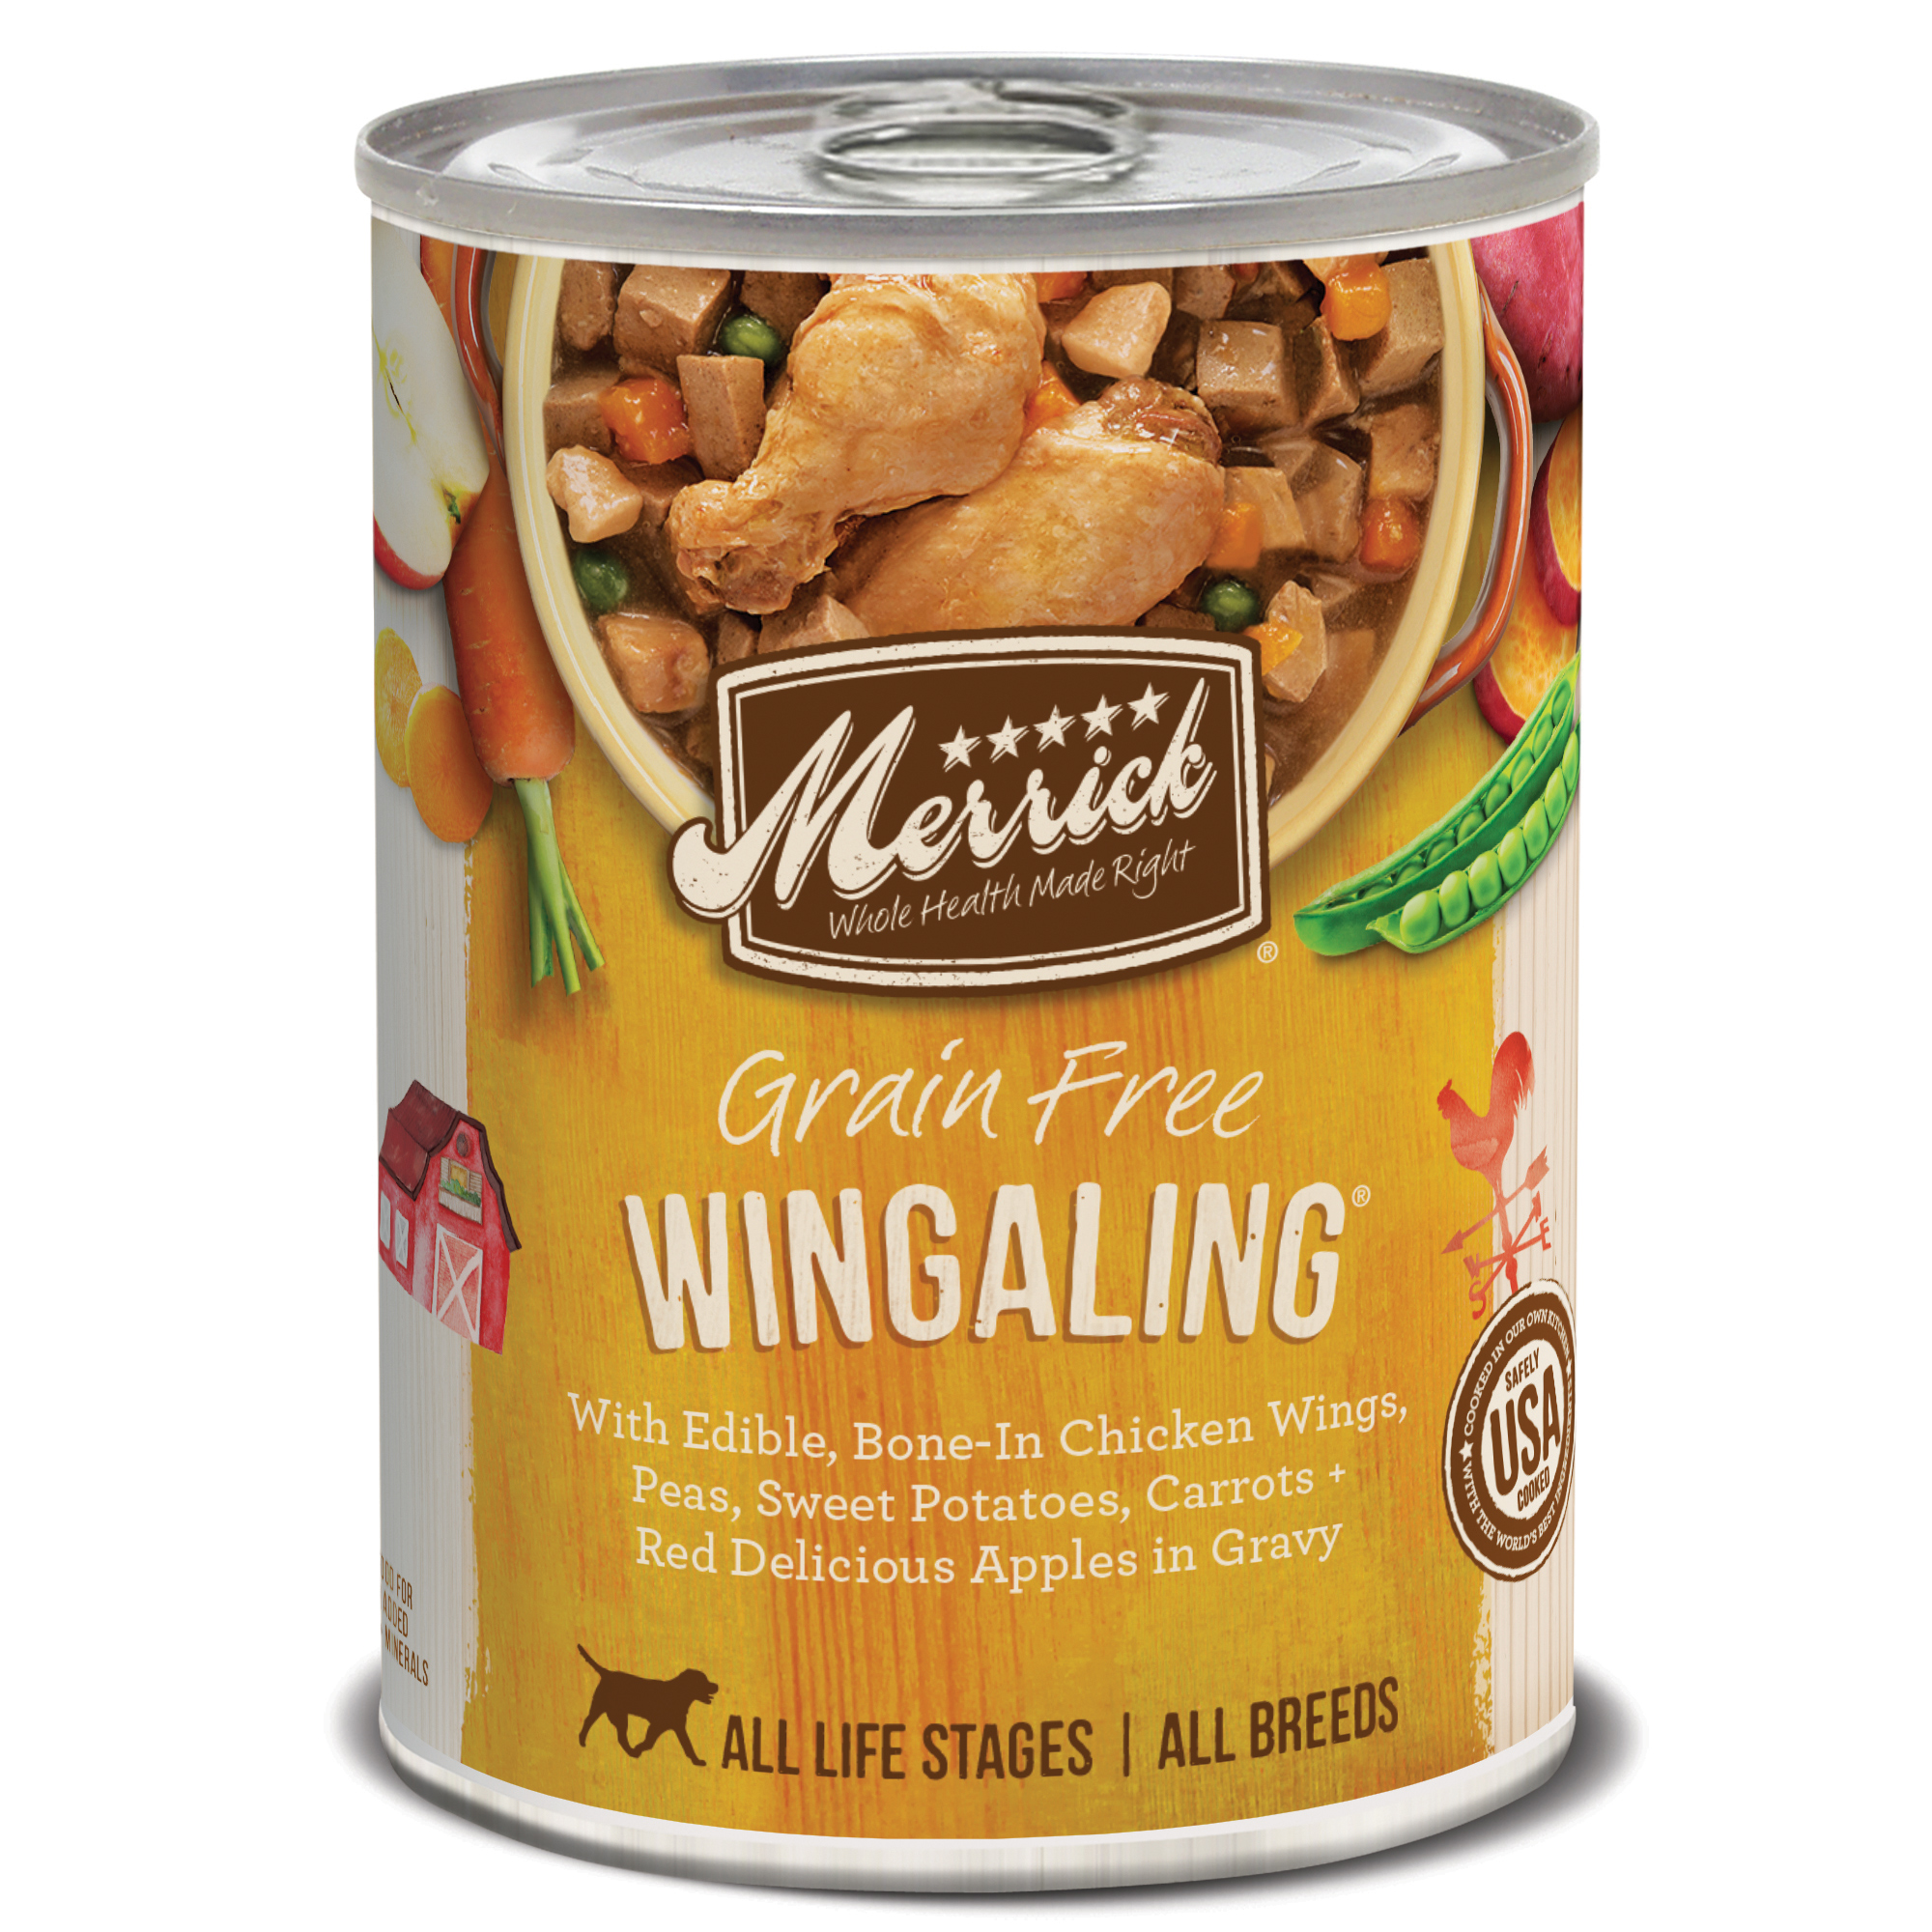 Merrick Grain-Free Wingaling Canned Dog Food, 12.7-oz